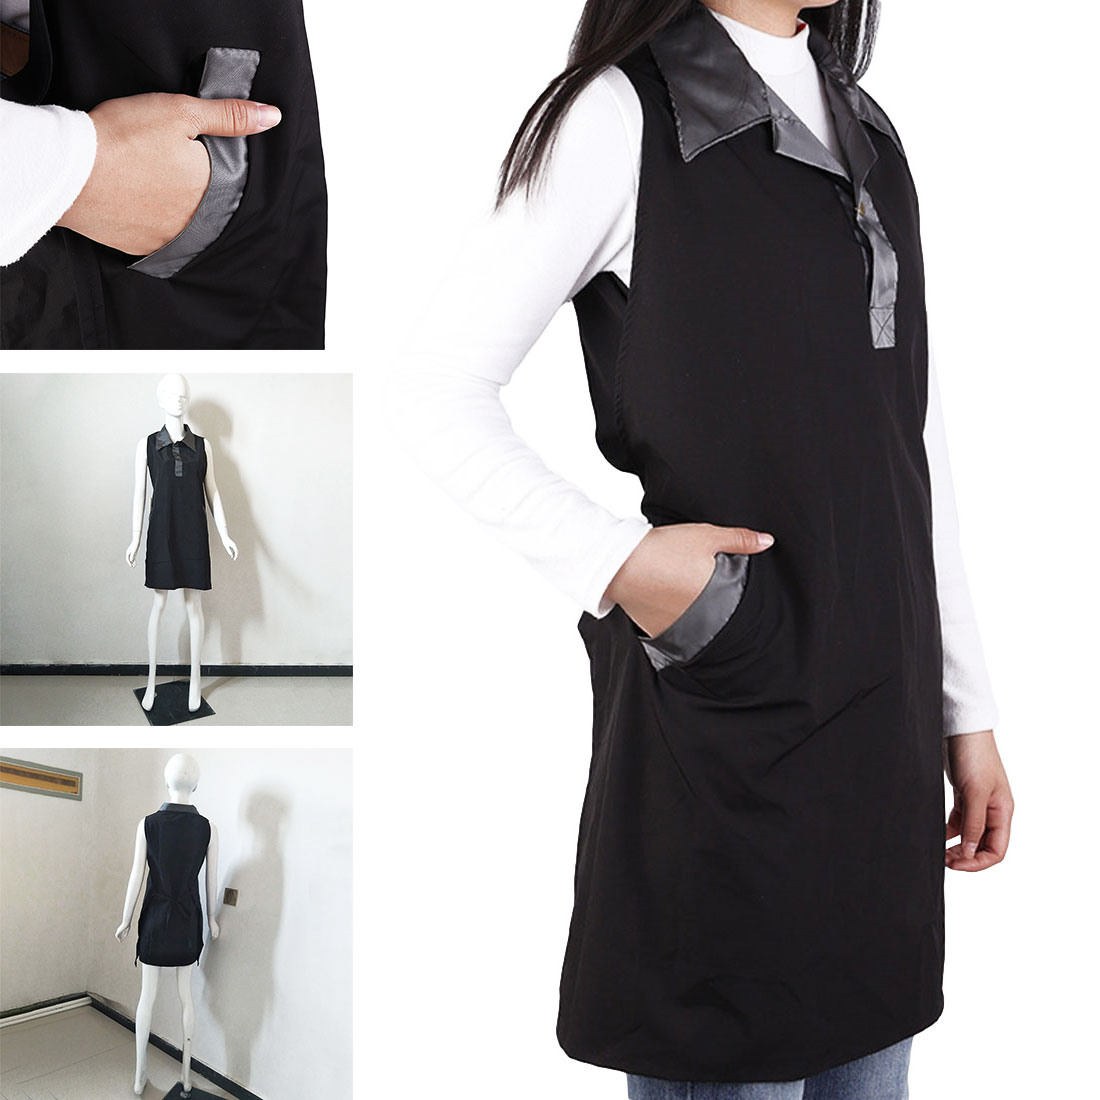 1pcs Wholesale/retail Salon Barber Shop Hair Salon Tea Cafe Black Apron Manicure Hairdressing Work Clothes Technician's Uniform